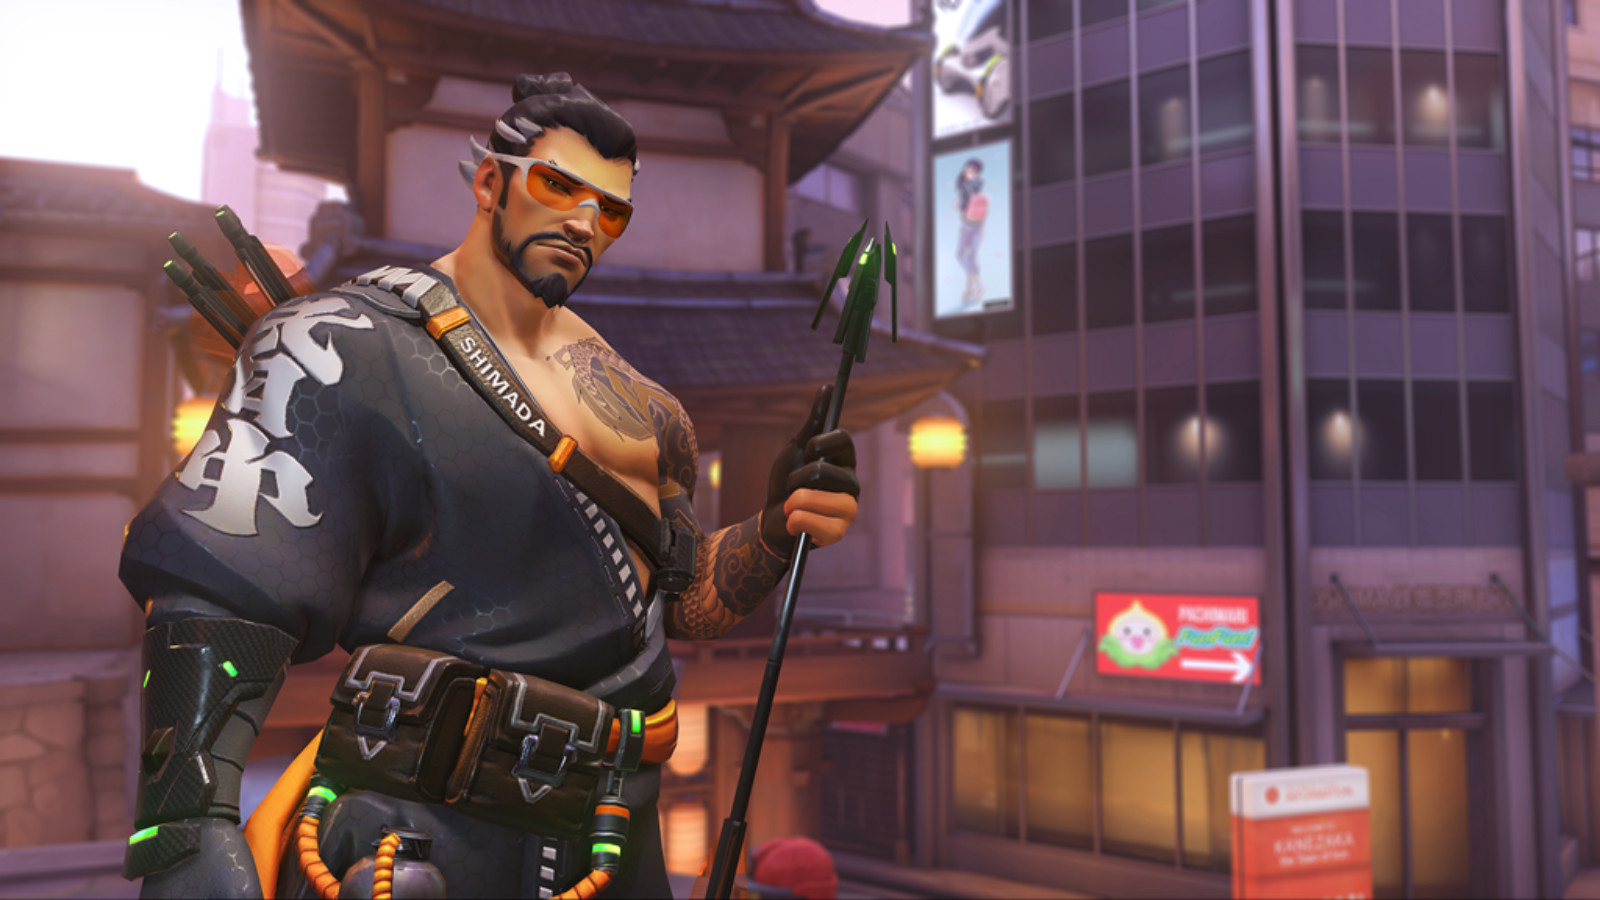 Hanzo on Overwatch death match event